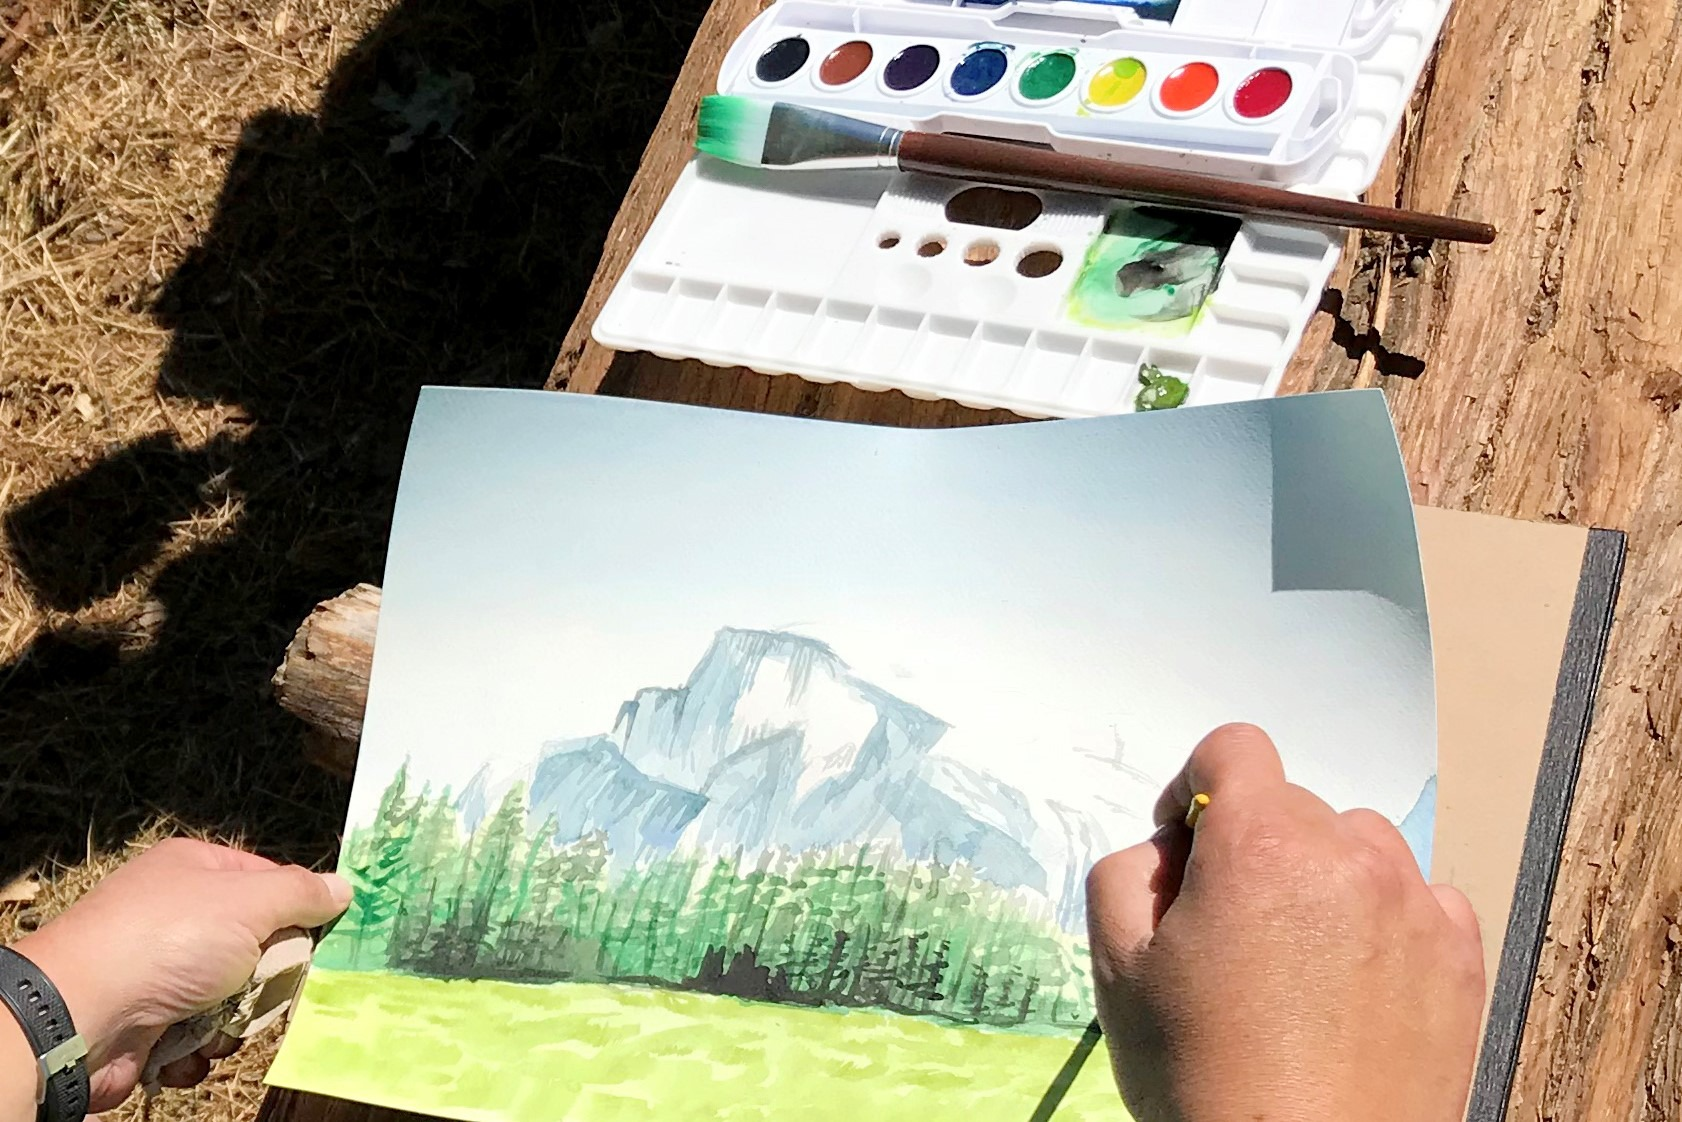 Photo showing an art class student's hands holding an in-progress watercolor painting of Half Dome. A watercolor kit and paintbrush rest on a log beneath the painting.